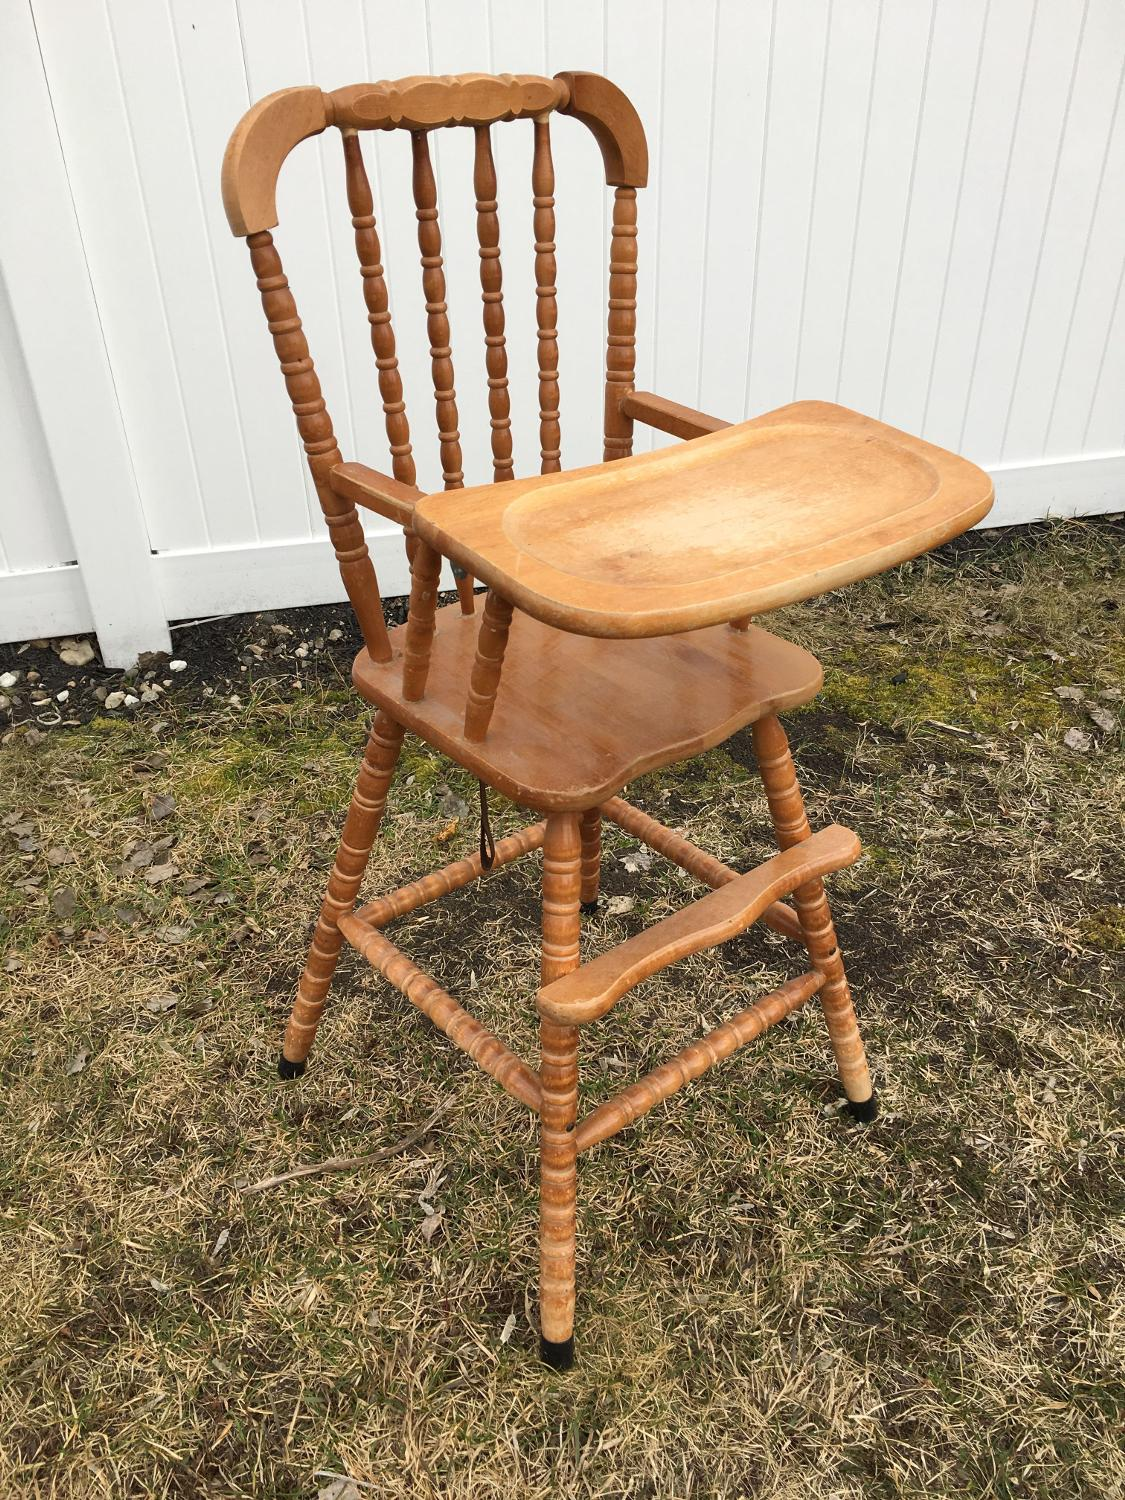 Find More Wooden High Chair With Removable Tray For Sale